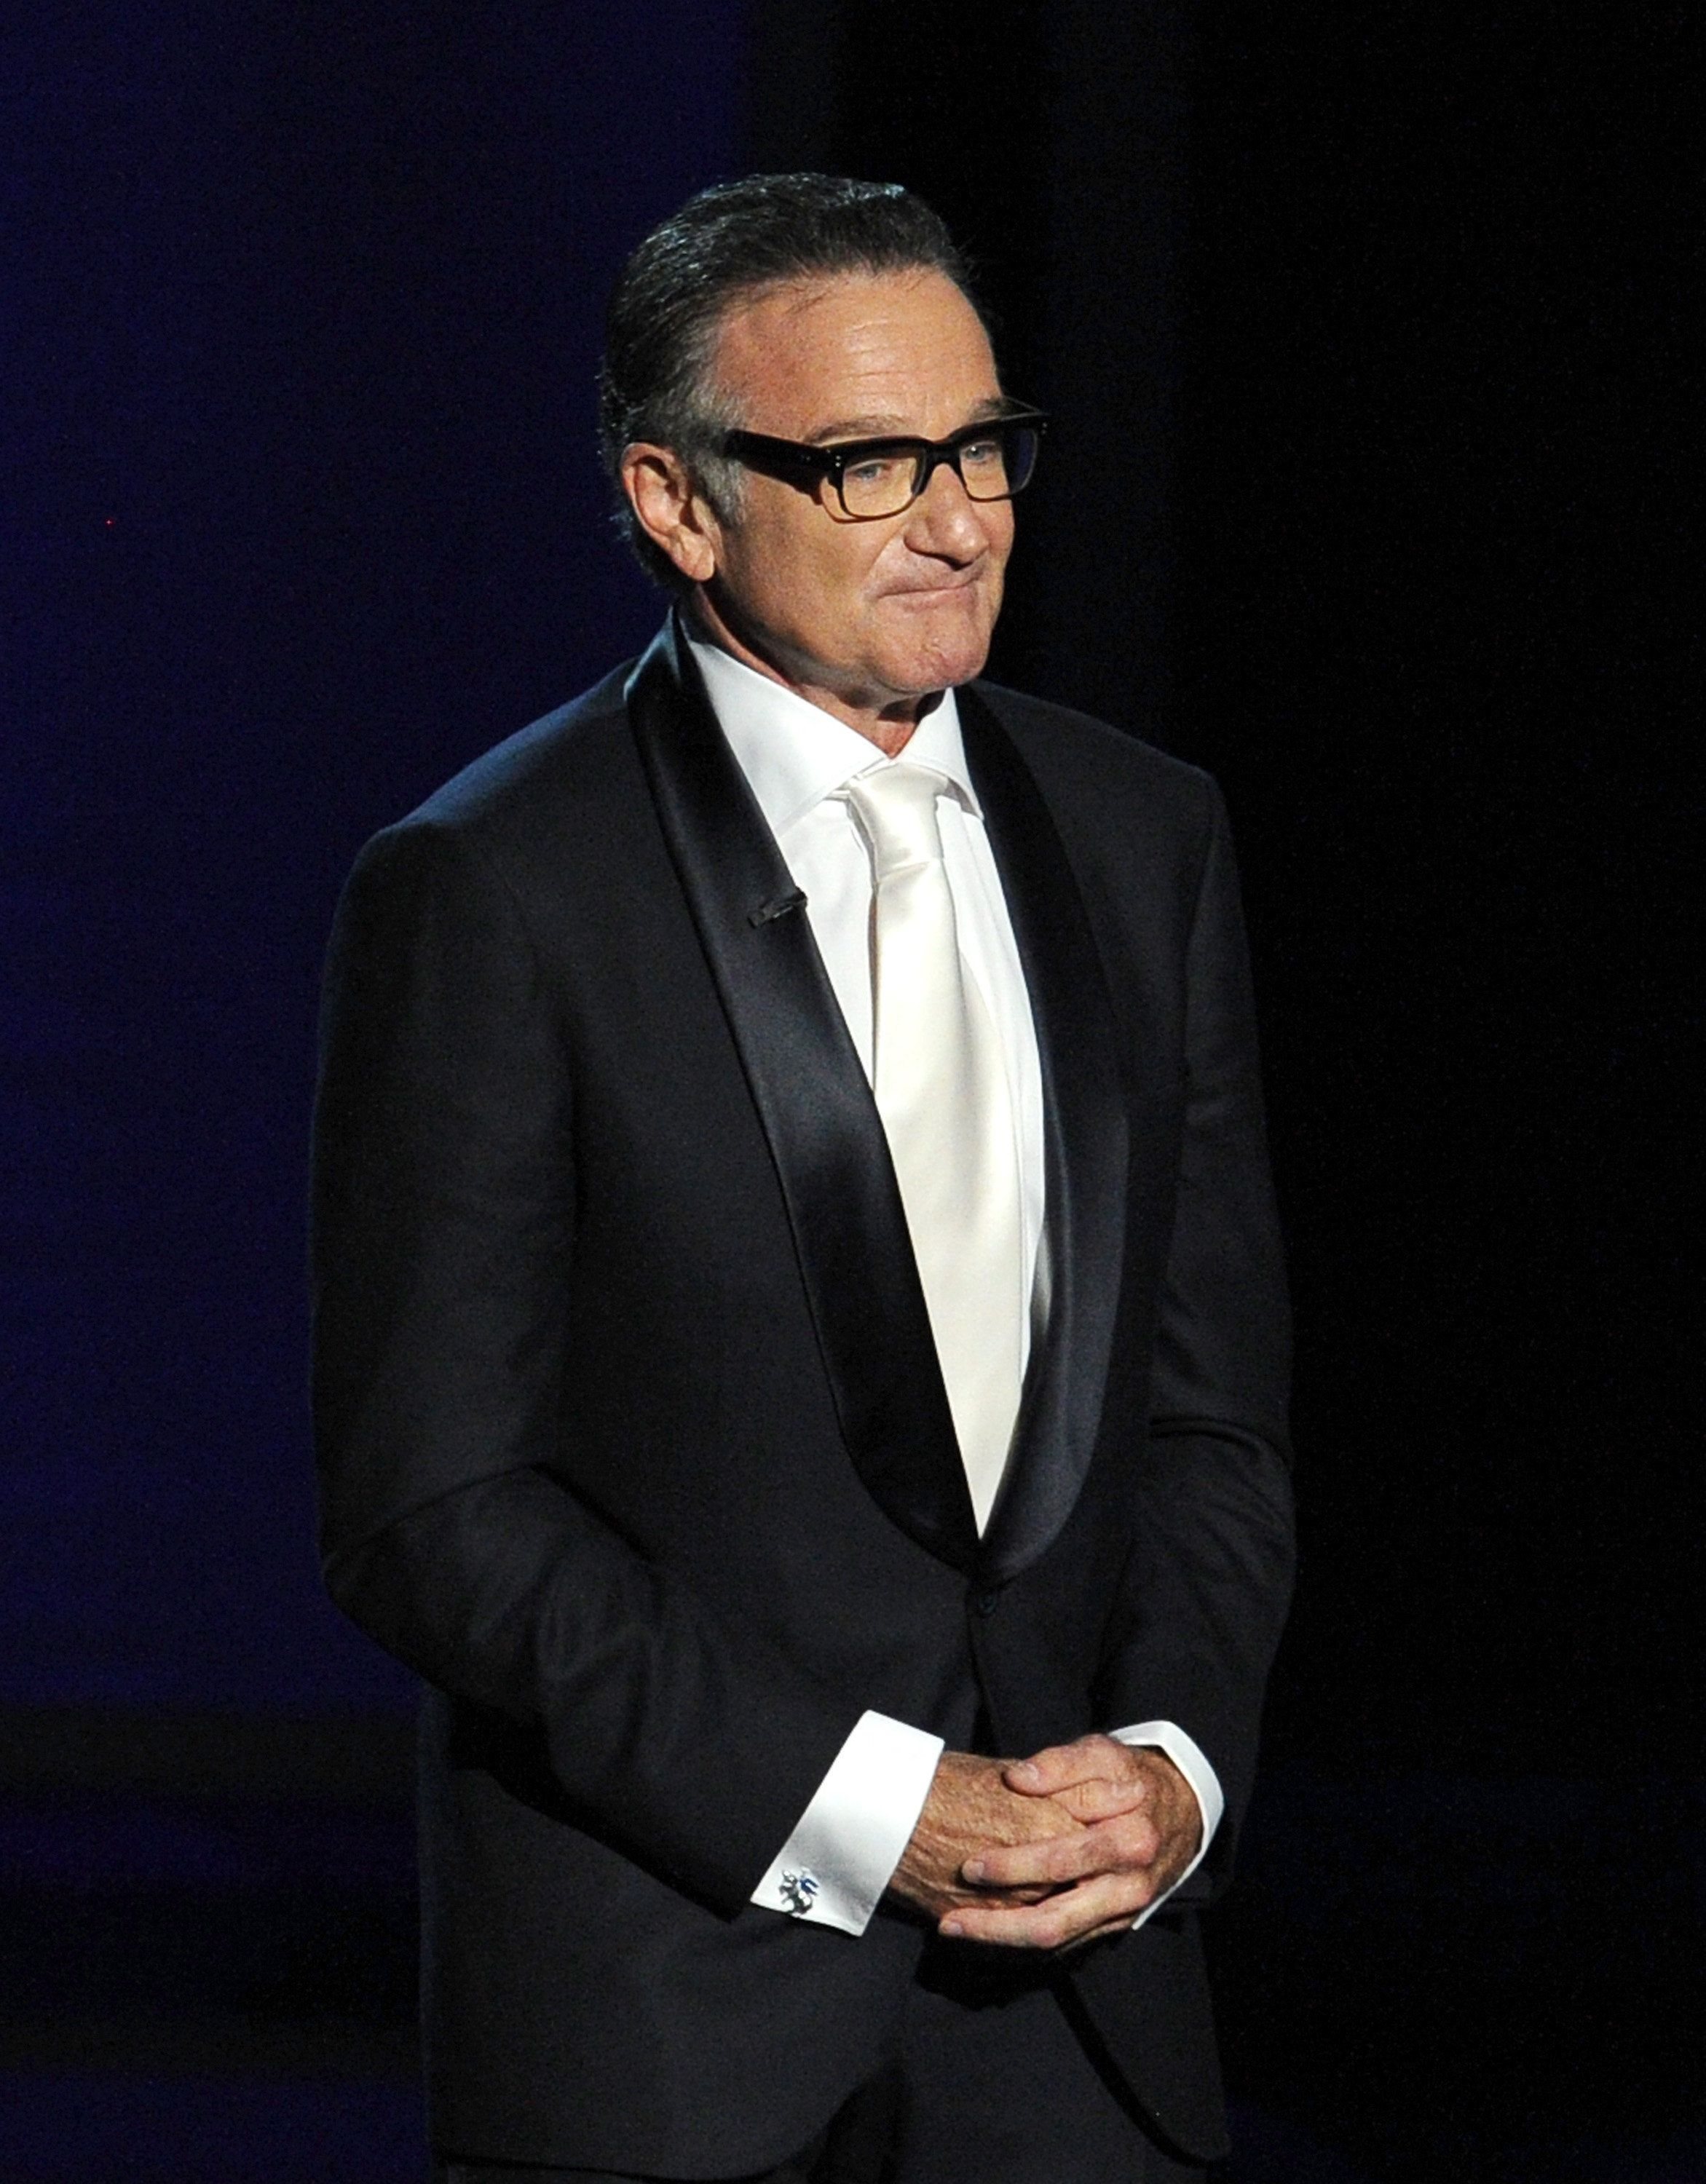 LOS ANGELES, CA - SEPTEMBER 22:  Actor Robin Williams speaks onstage during the 65th Annual Primetime Emmy Awards held at Nokia Theatre L.A. Live on September 22, 2013 in Los Angeles, California.  (Photo by Kevin Winter/Getty Images)